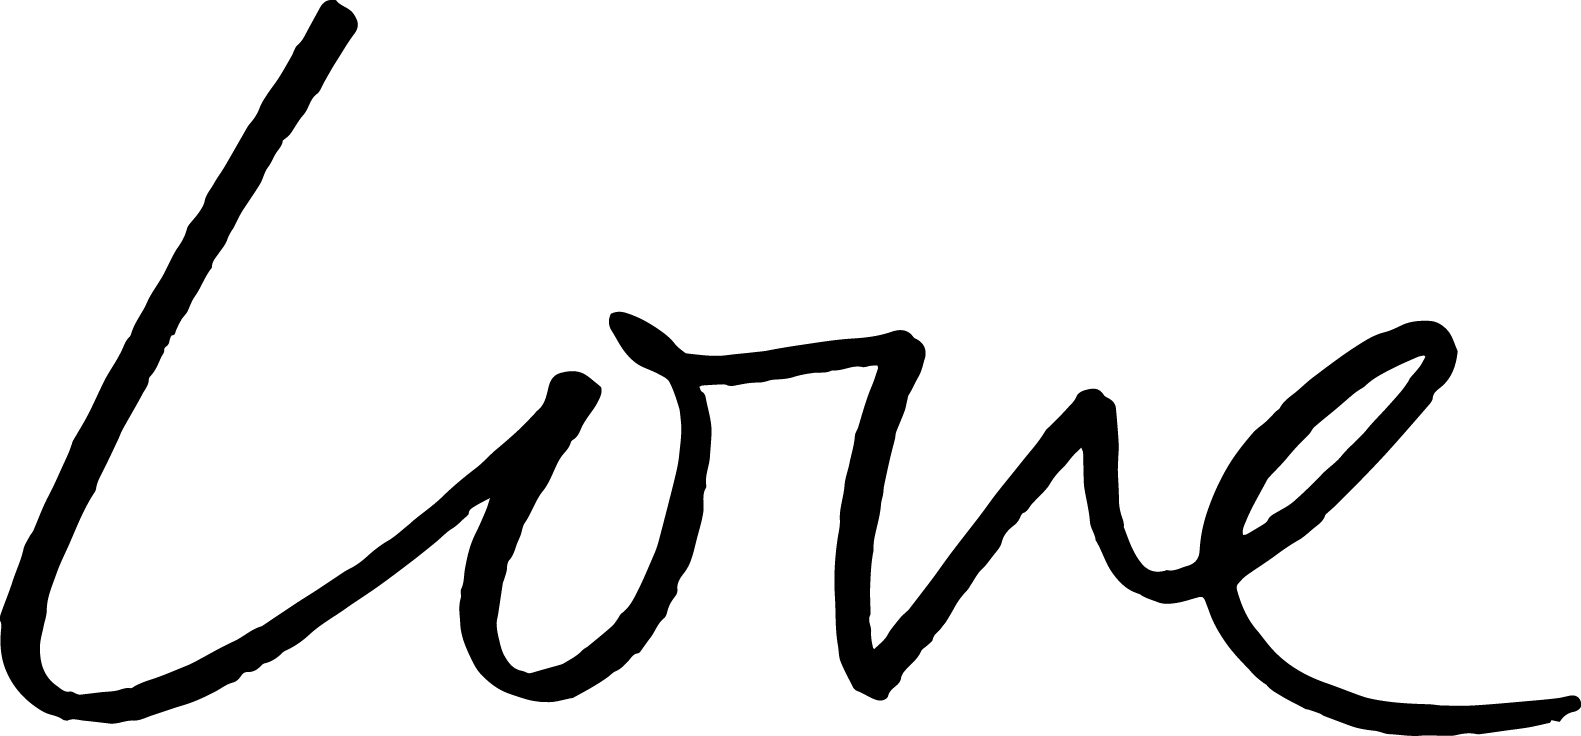 LACYLETTERING-14.png